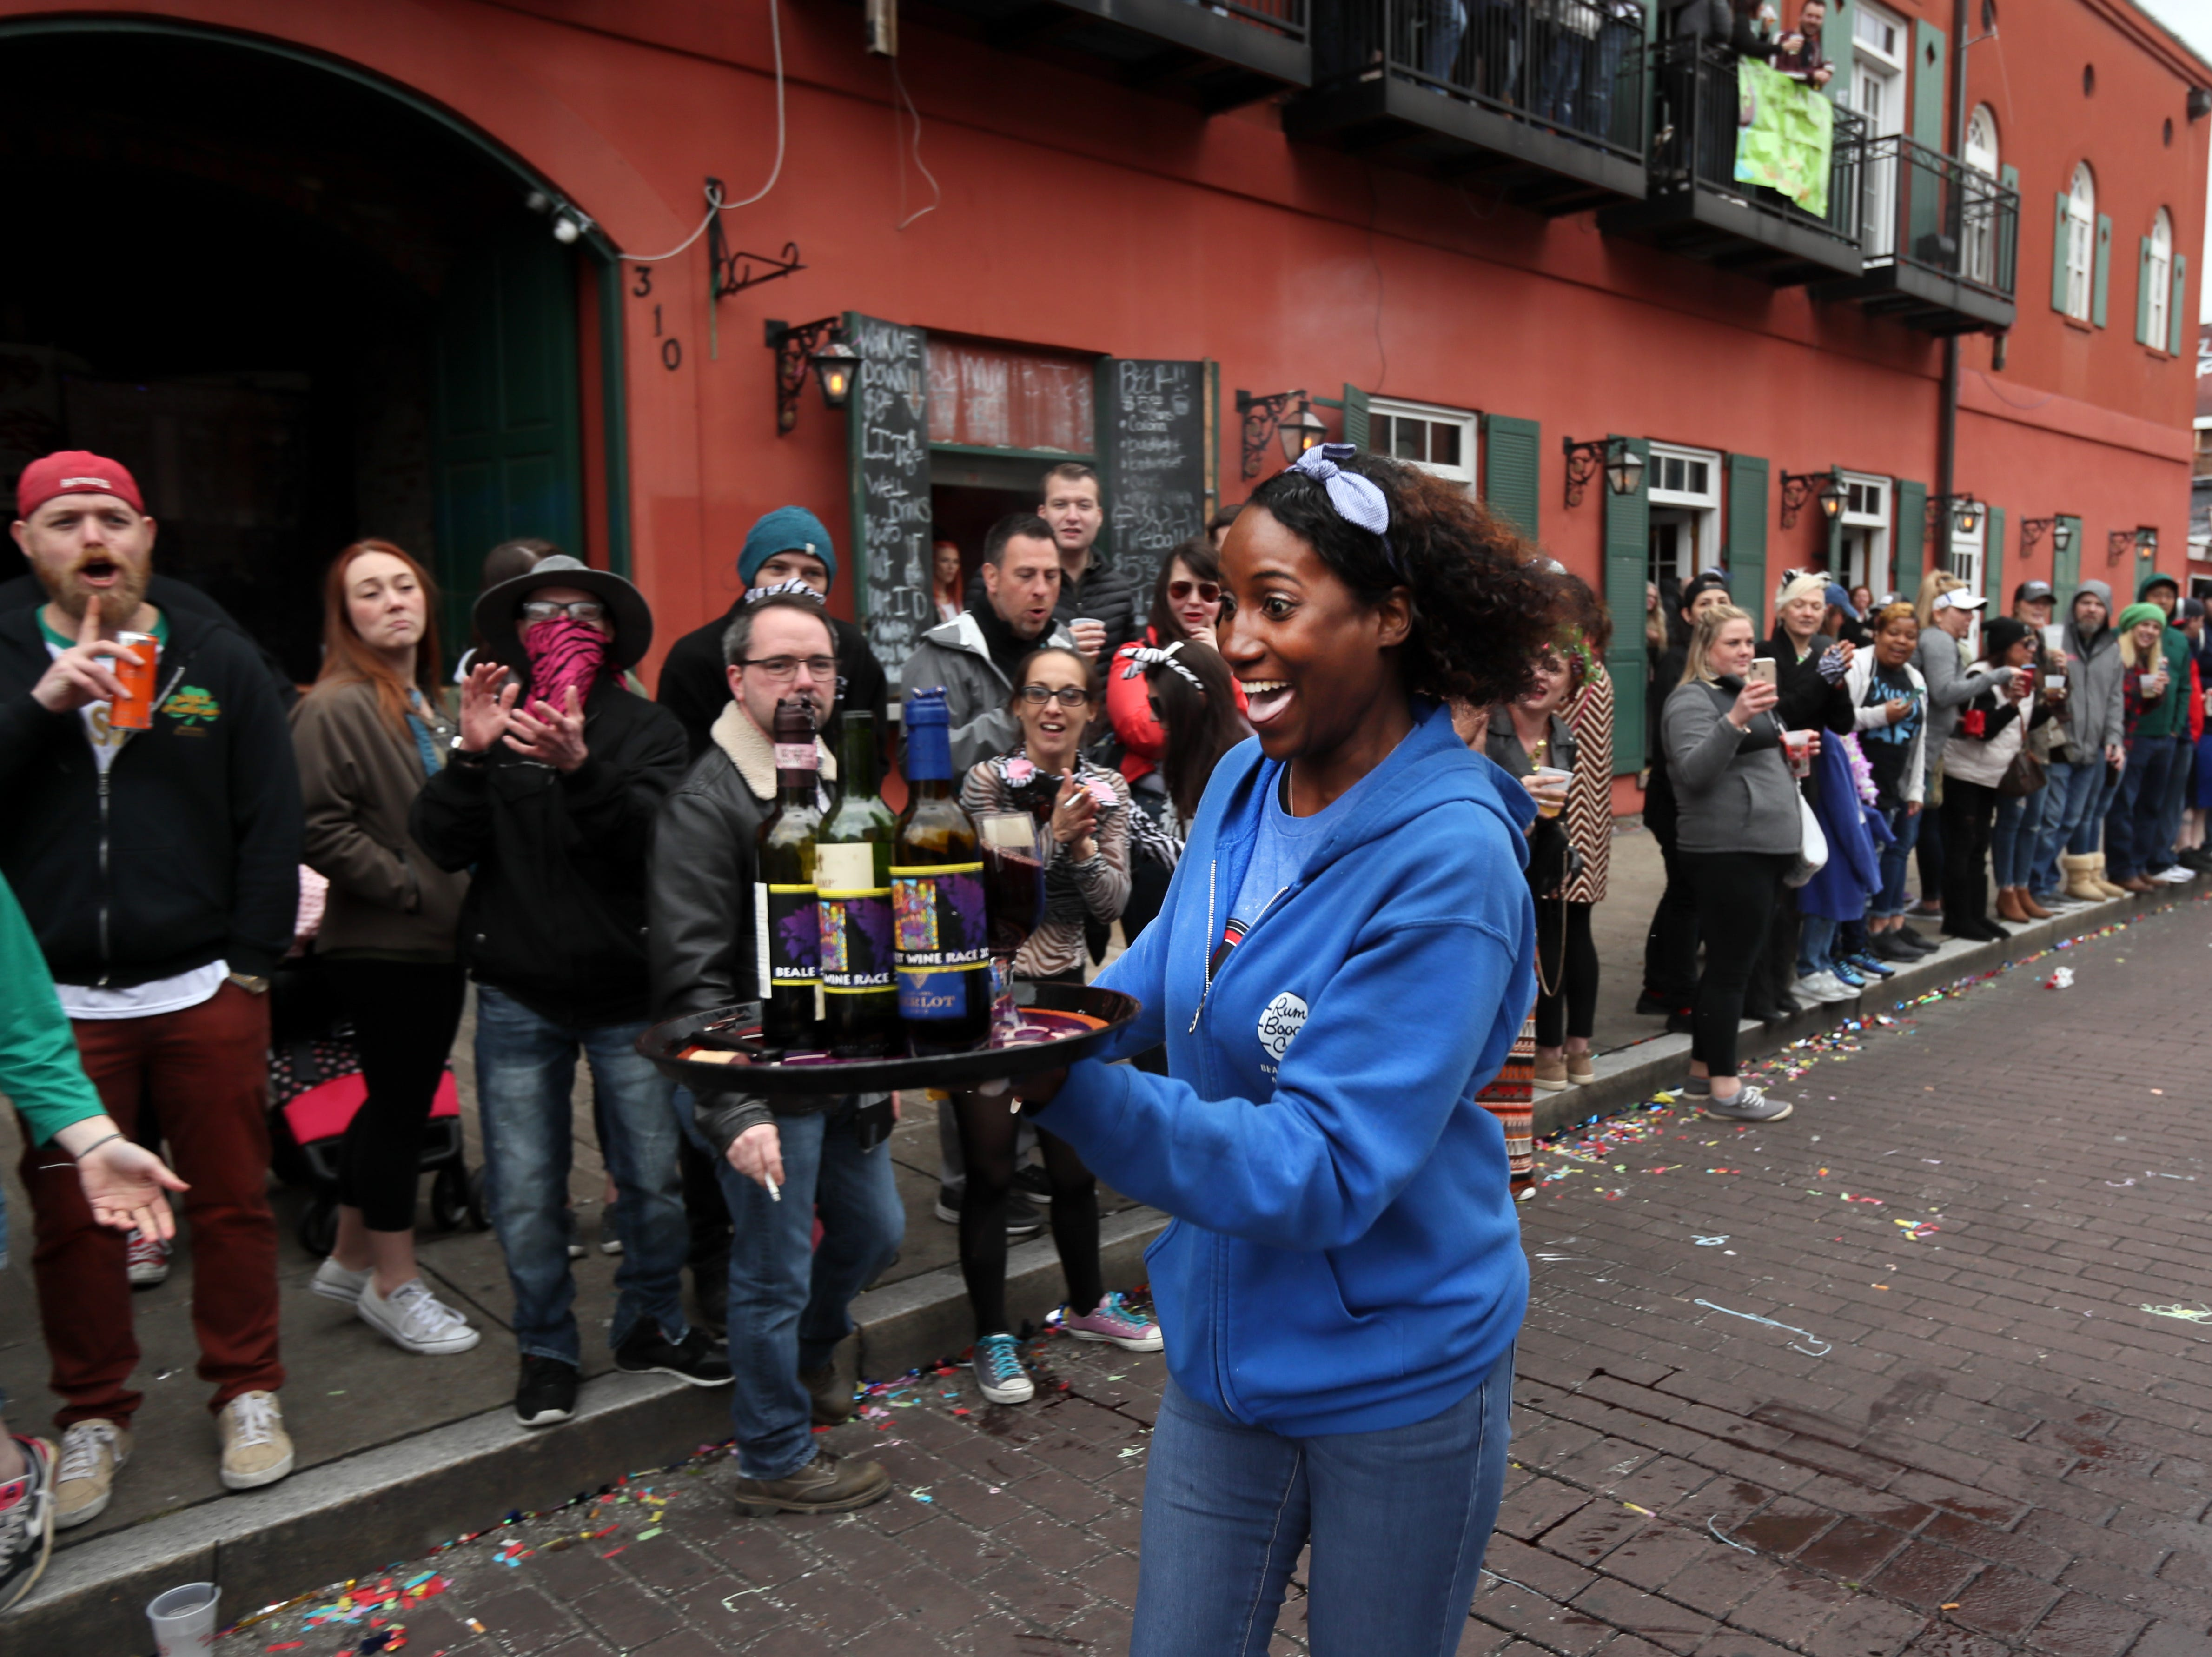 Takena Walton speeds down the street with a tray full of bottles and glassware during the Beale Street Wine Race downtown on Sunday, April 14, 2019.